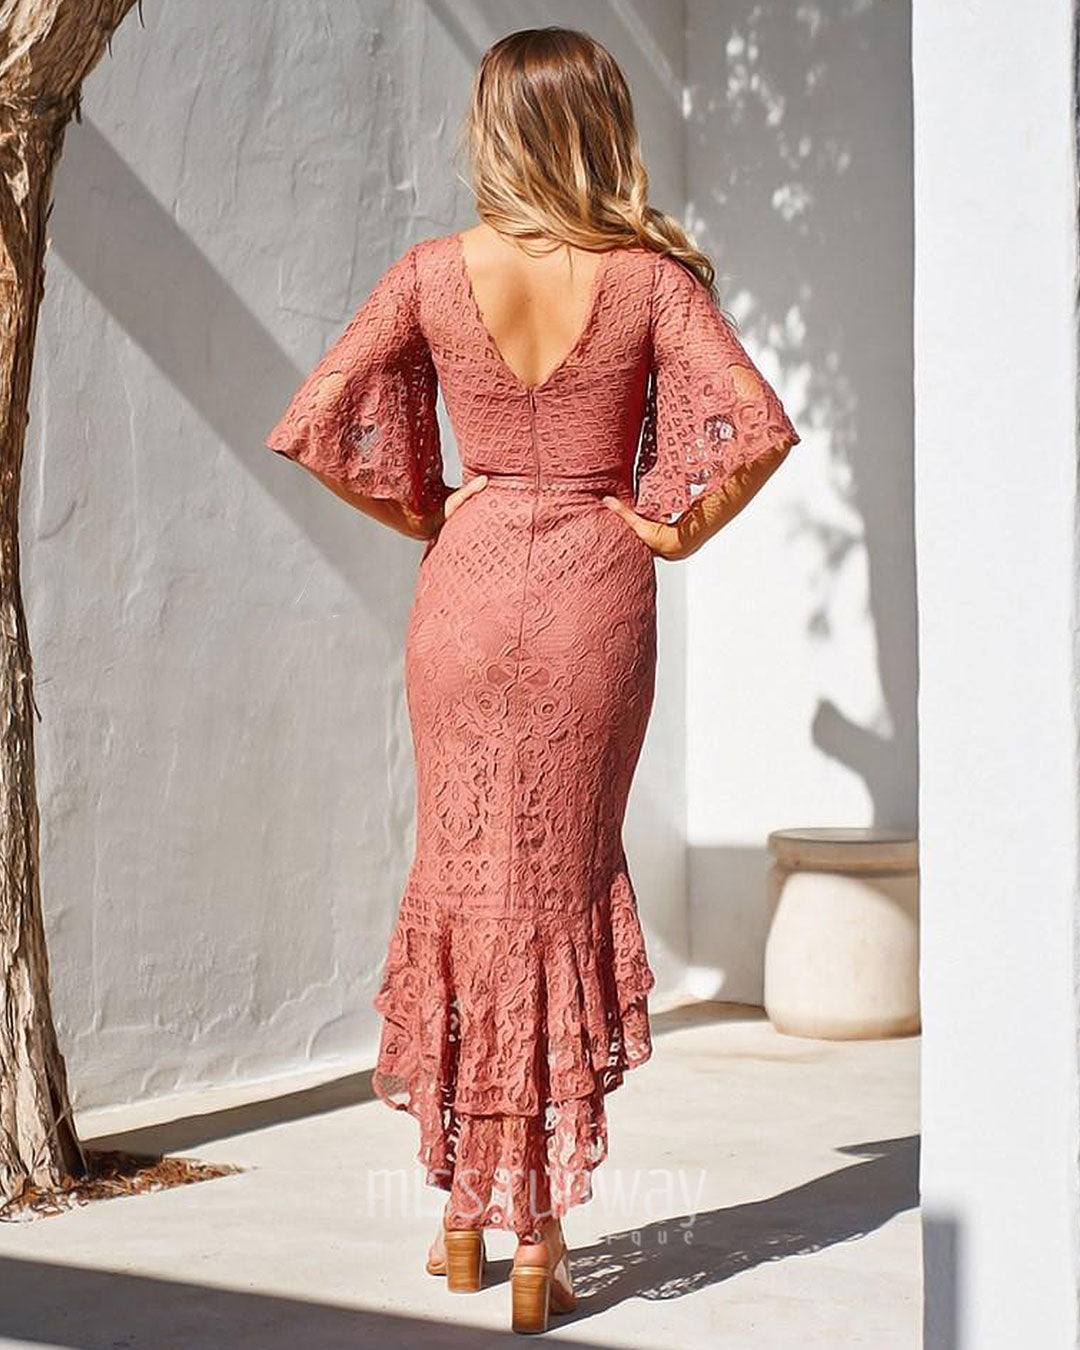 Reyna Lace Midi Dress - Mauve [PRE-ORDER]